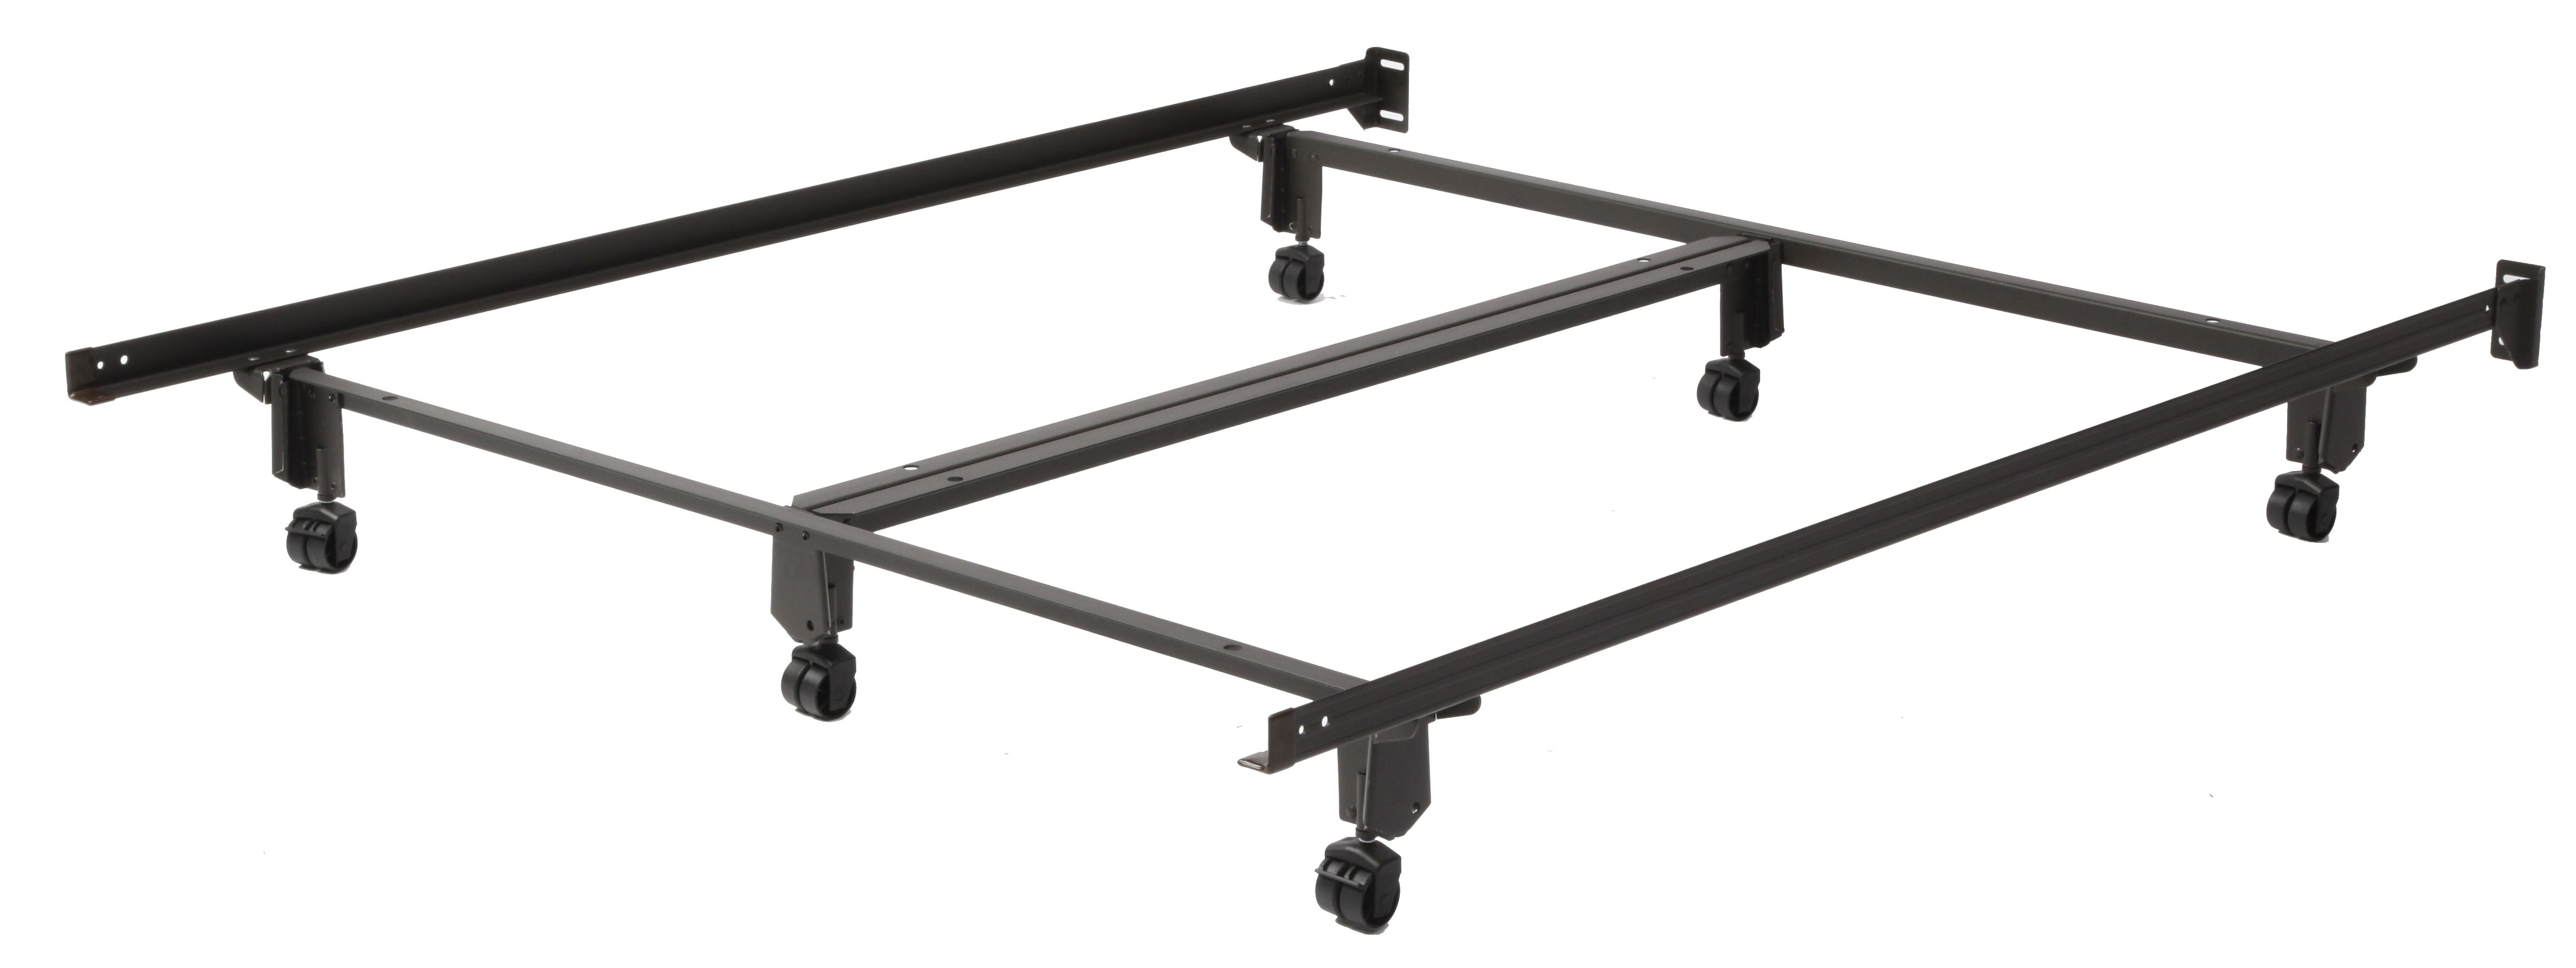 Mantua CraftLock 150R Queen Bed Frame with Rollers